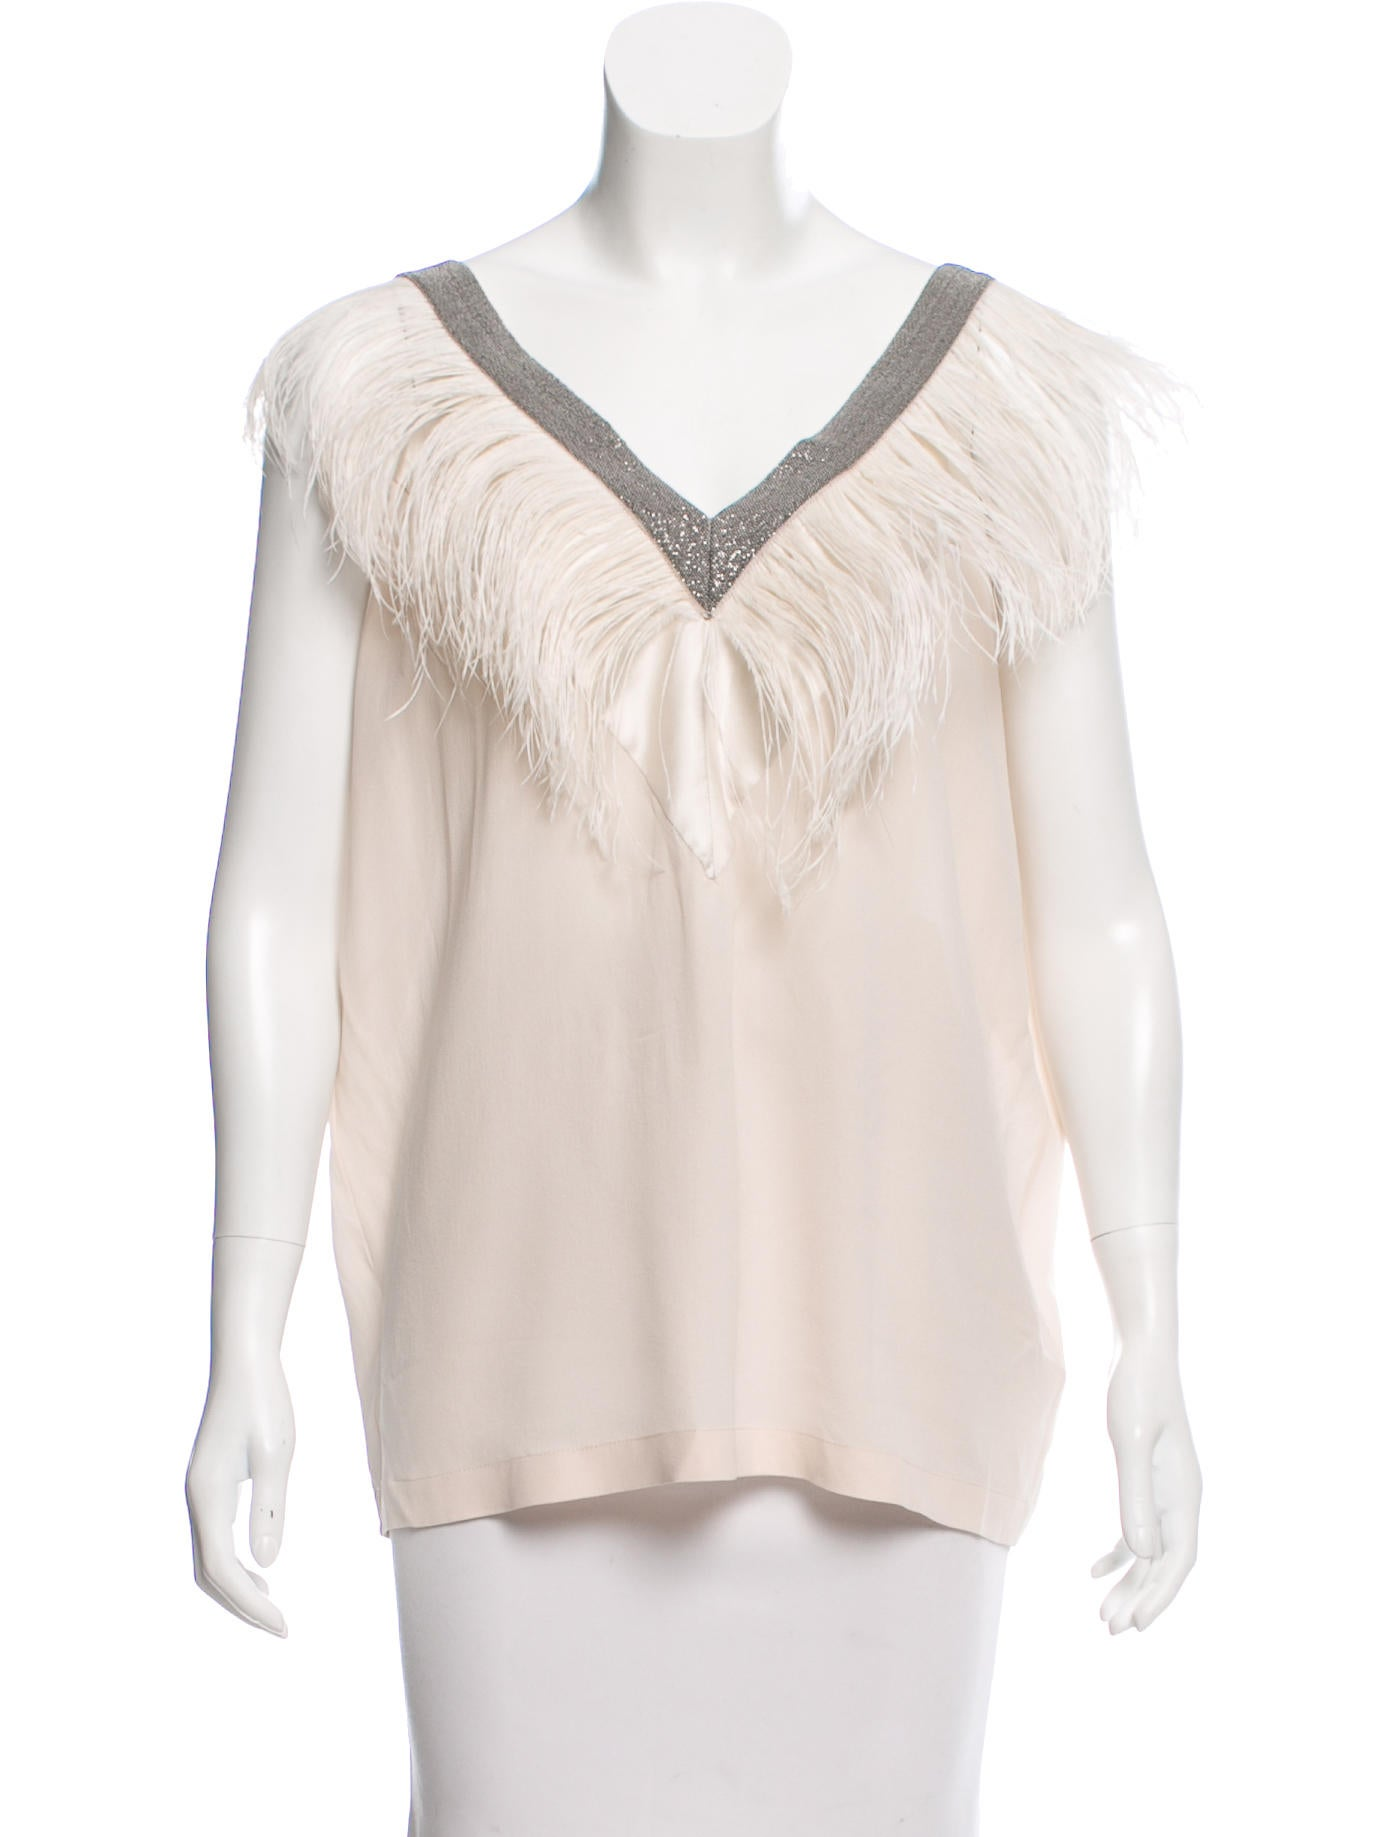 737550bfc31 Brunello Cucinelli Feather-Accented Sleeveless Top w  Tags ...